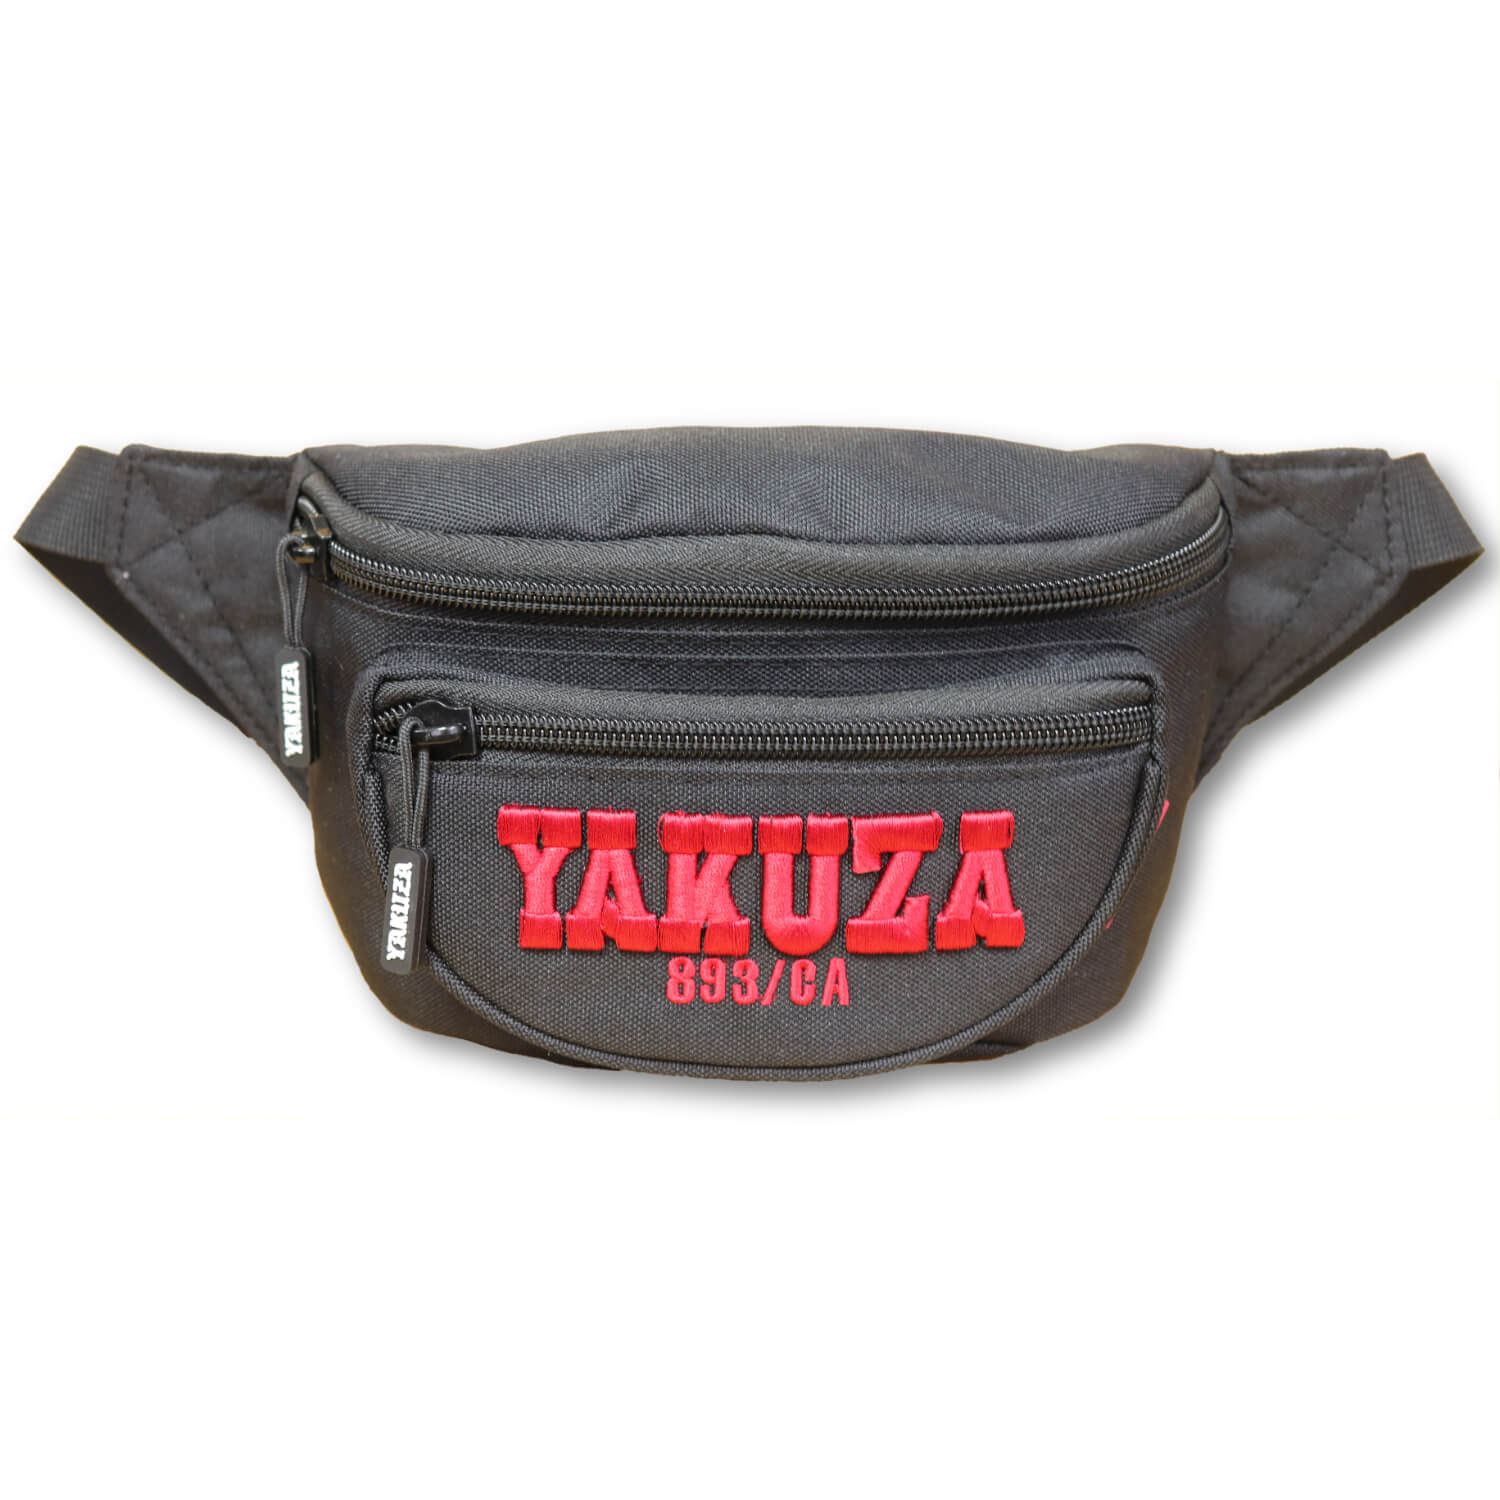 Yakuza, 893College Belt Bag, GTB16305 BLK ONE